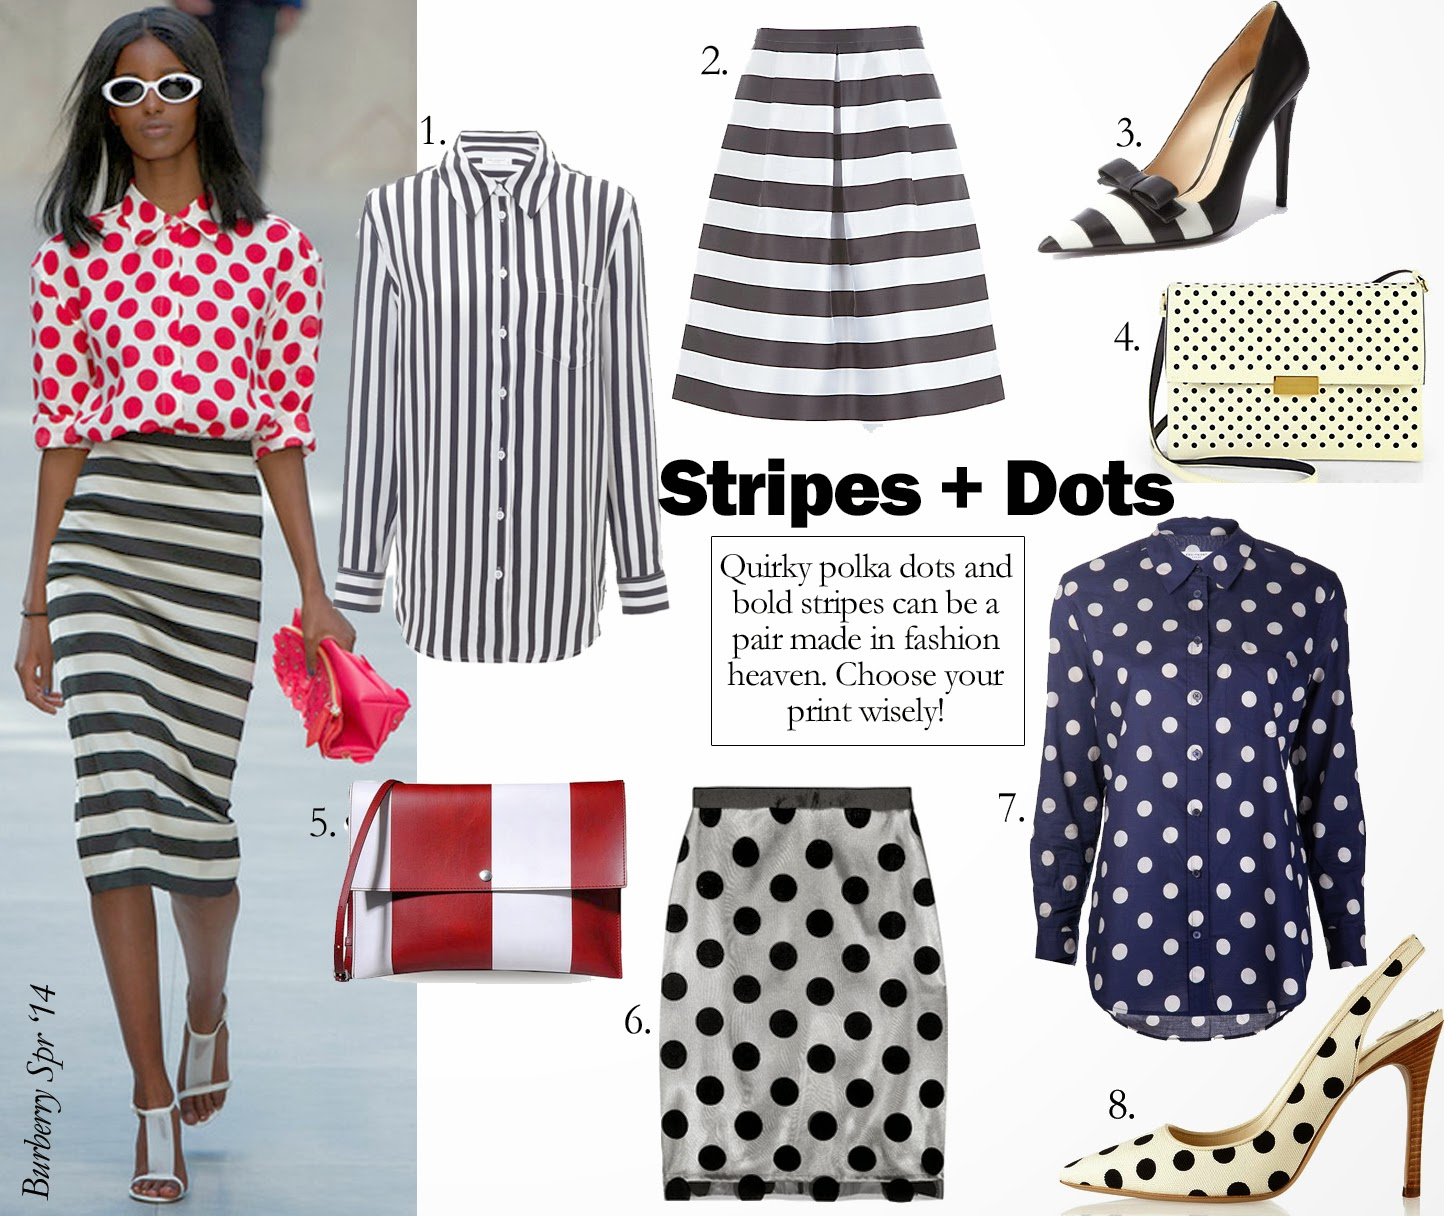 Get The Look: Stripes + Dots